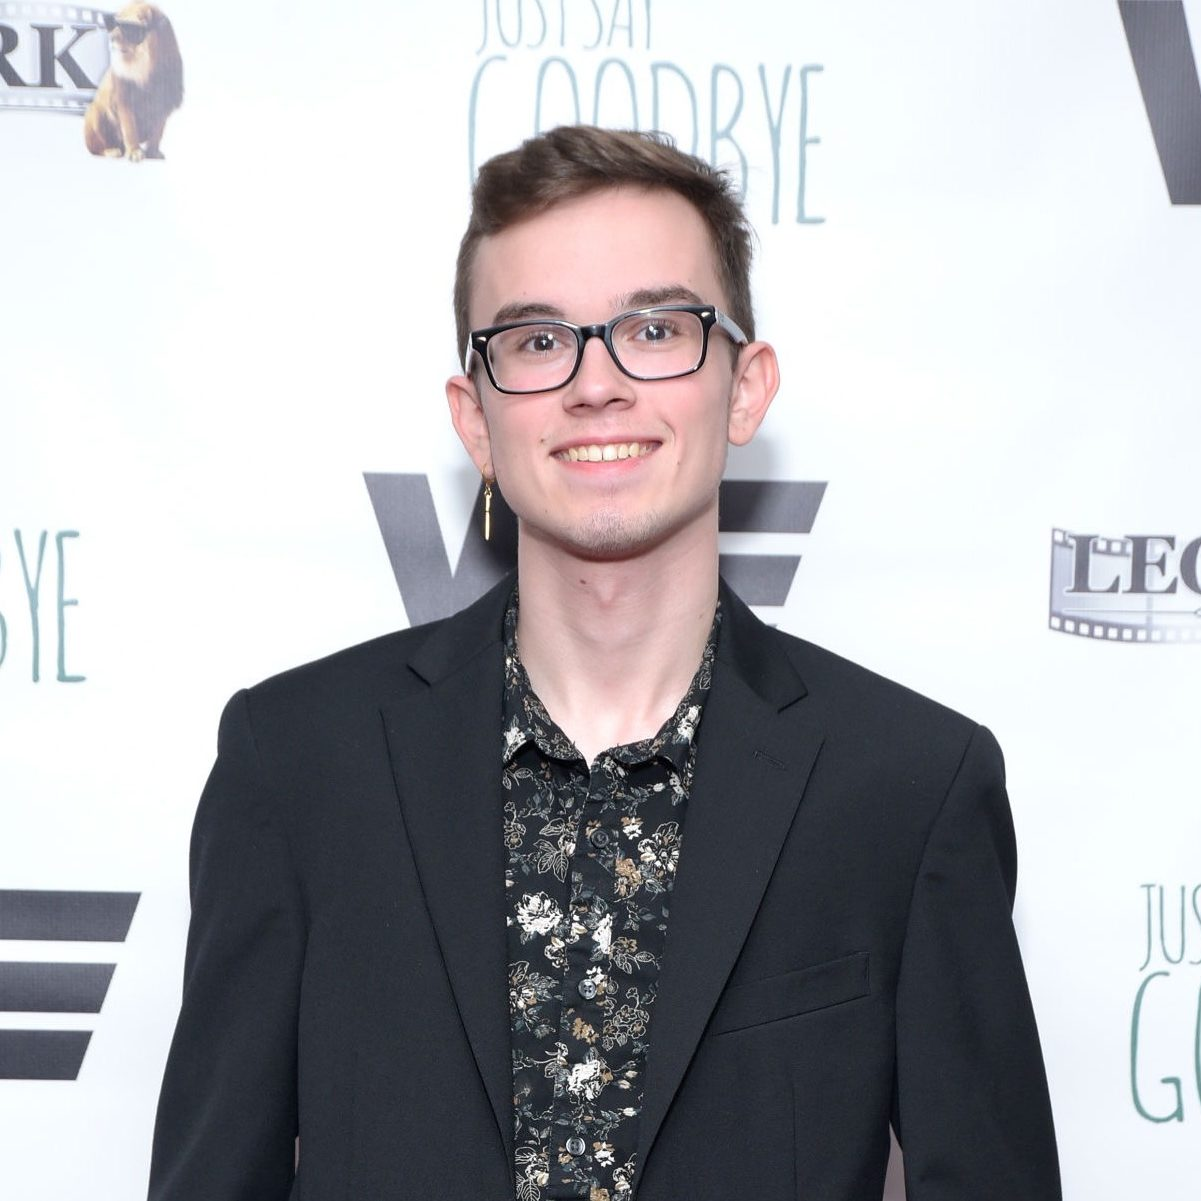 """NORTH HOLLYWOOD, CALIFORNIA - MAY 09: Director Matt Walting attends the Los Angeles premiere of Leomark Studios' and Waiting Entertainment's """"Just Say Goodbye"""" at Regency Valley Plaza 6 on May 09, 2019 in North Hollywood, California. (Photo by Michael Tullberg/Getty Images)"""